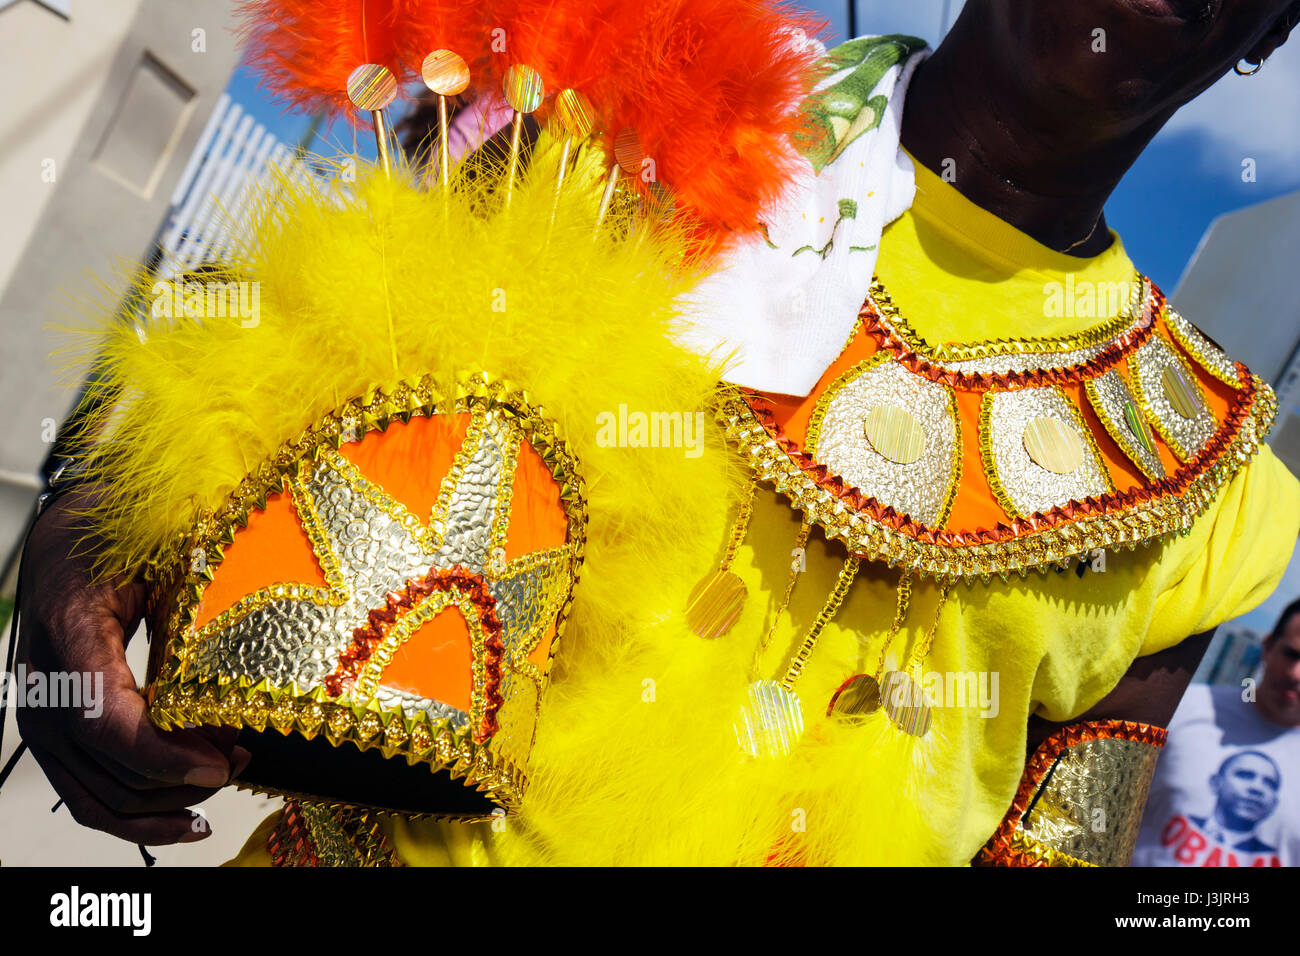 Miami Florida NE Second 2nd Avenue Miami Caribbean Carnival costume festival parade Black man colorful headdress - Stock Image